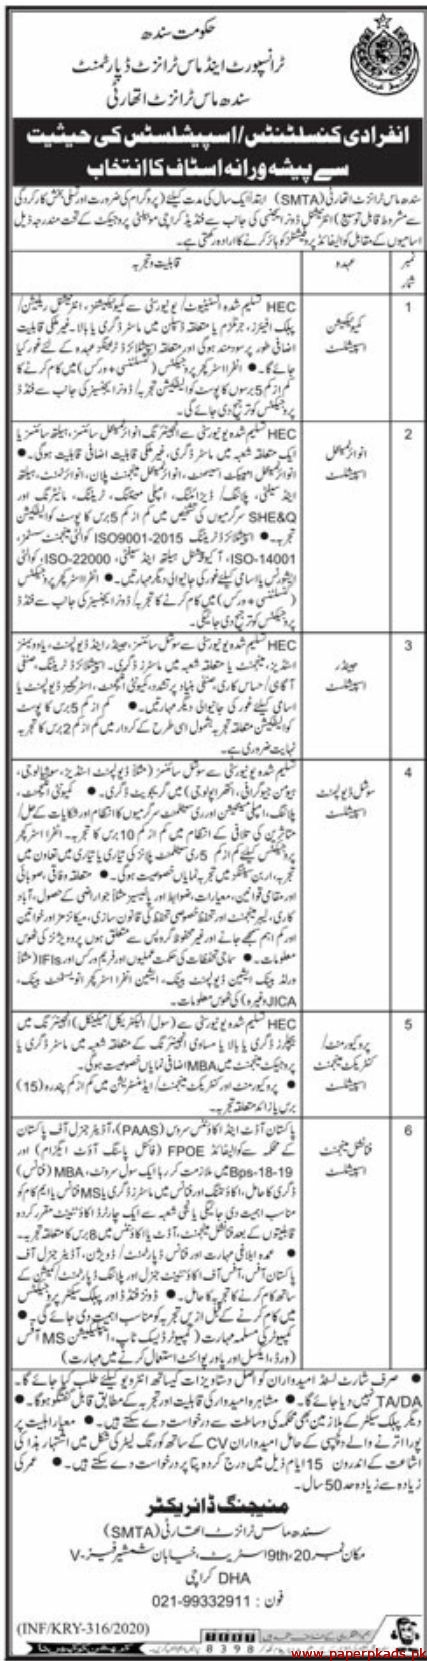 Transport and Mass Transit Department Sindh Jobs 2020 Latest